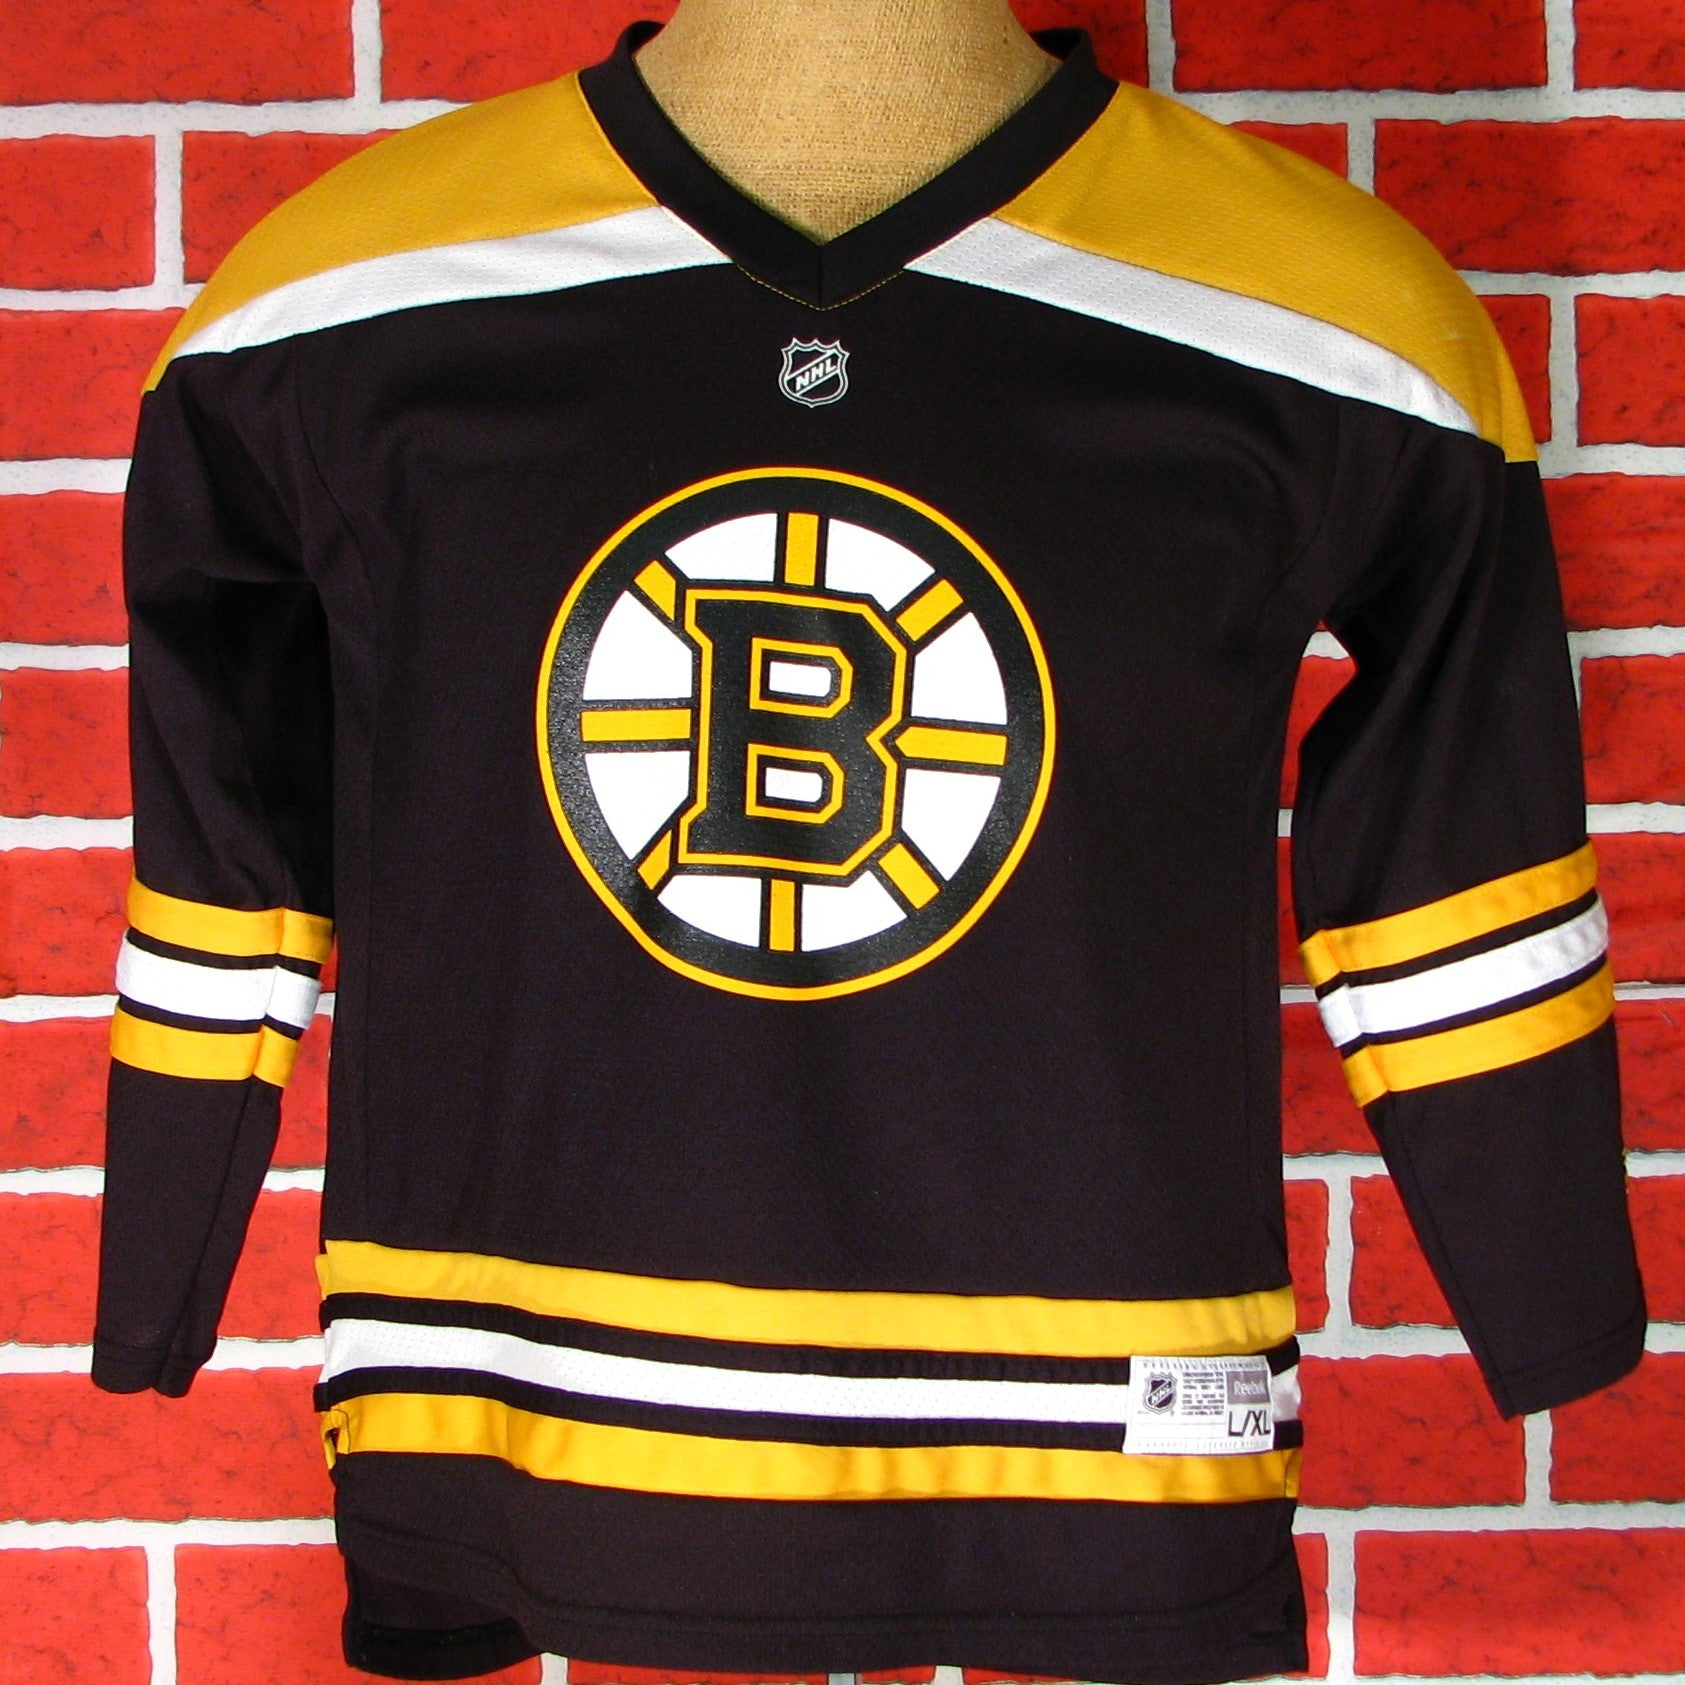 buy online 66a18 eee3d Boston Bruins Lucic # 17 Jersey Youth Large/Mens small